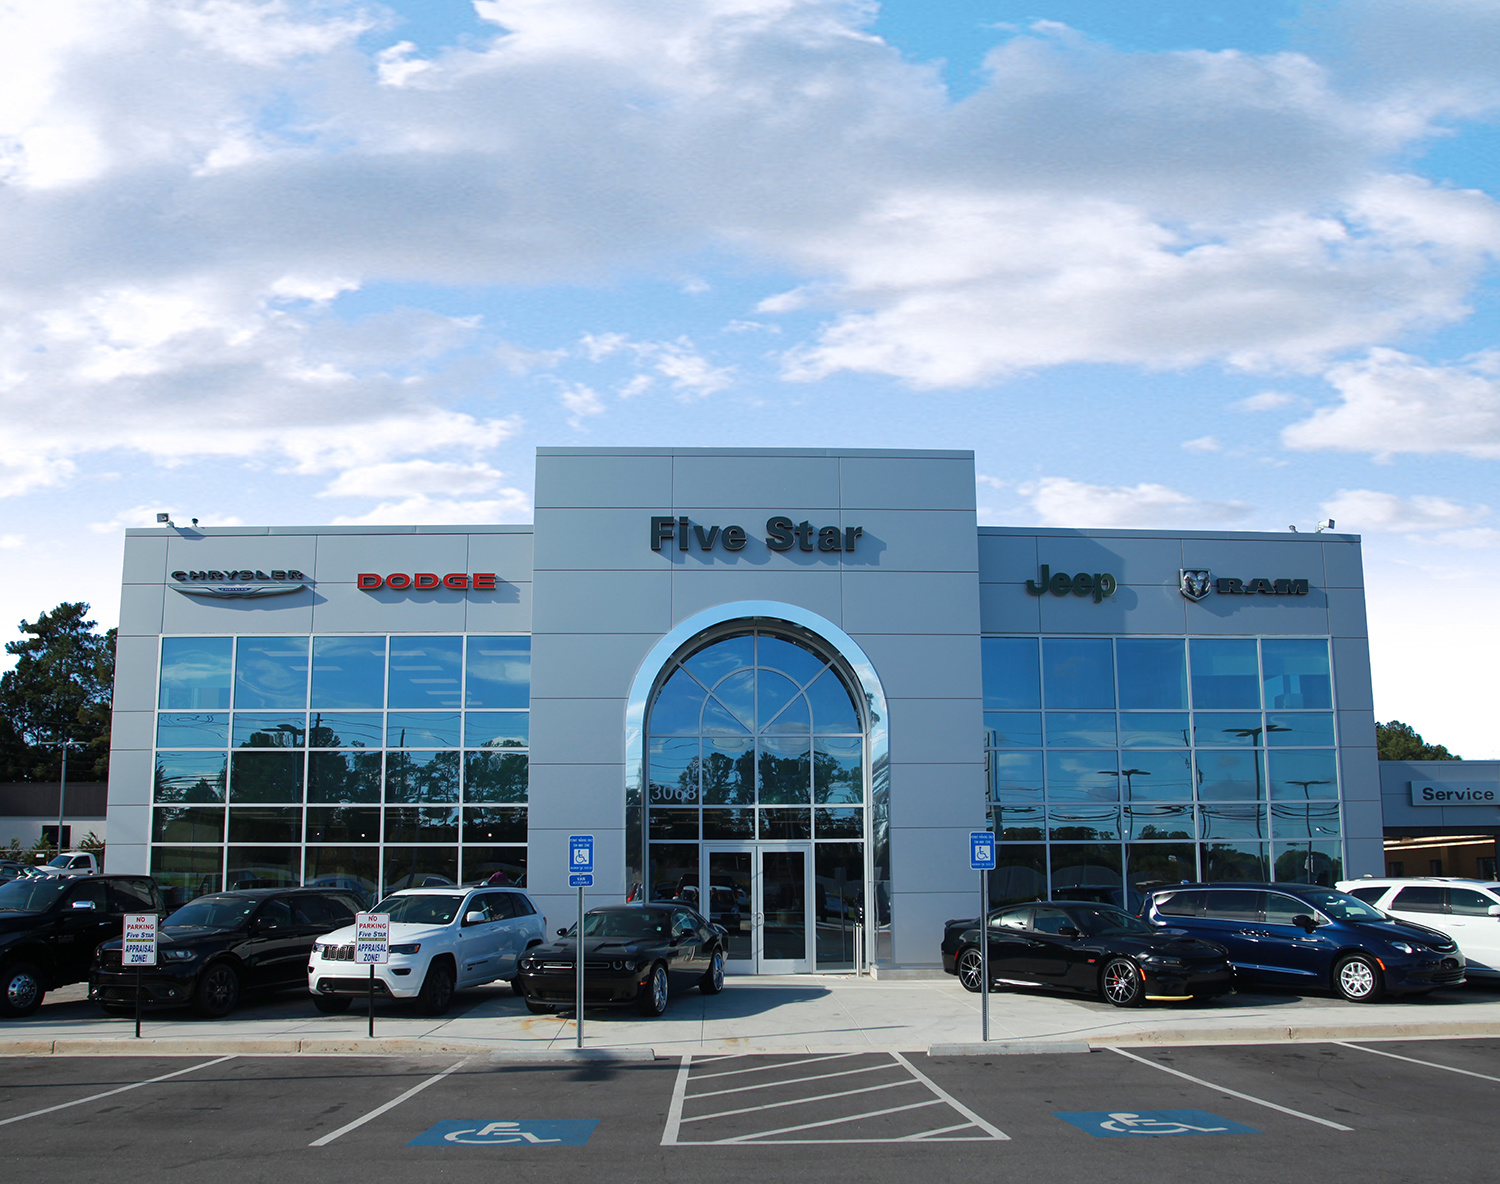 Five Star Chrysler Jeep Dodge Ram - Macon, GA: Read Consumer reviews